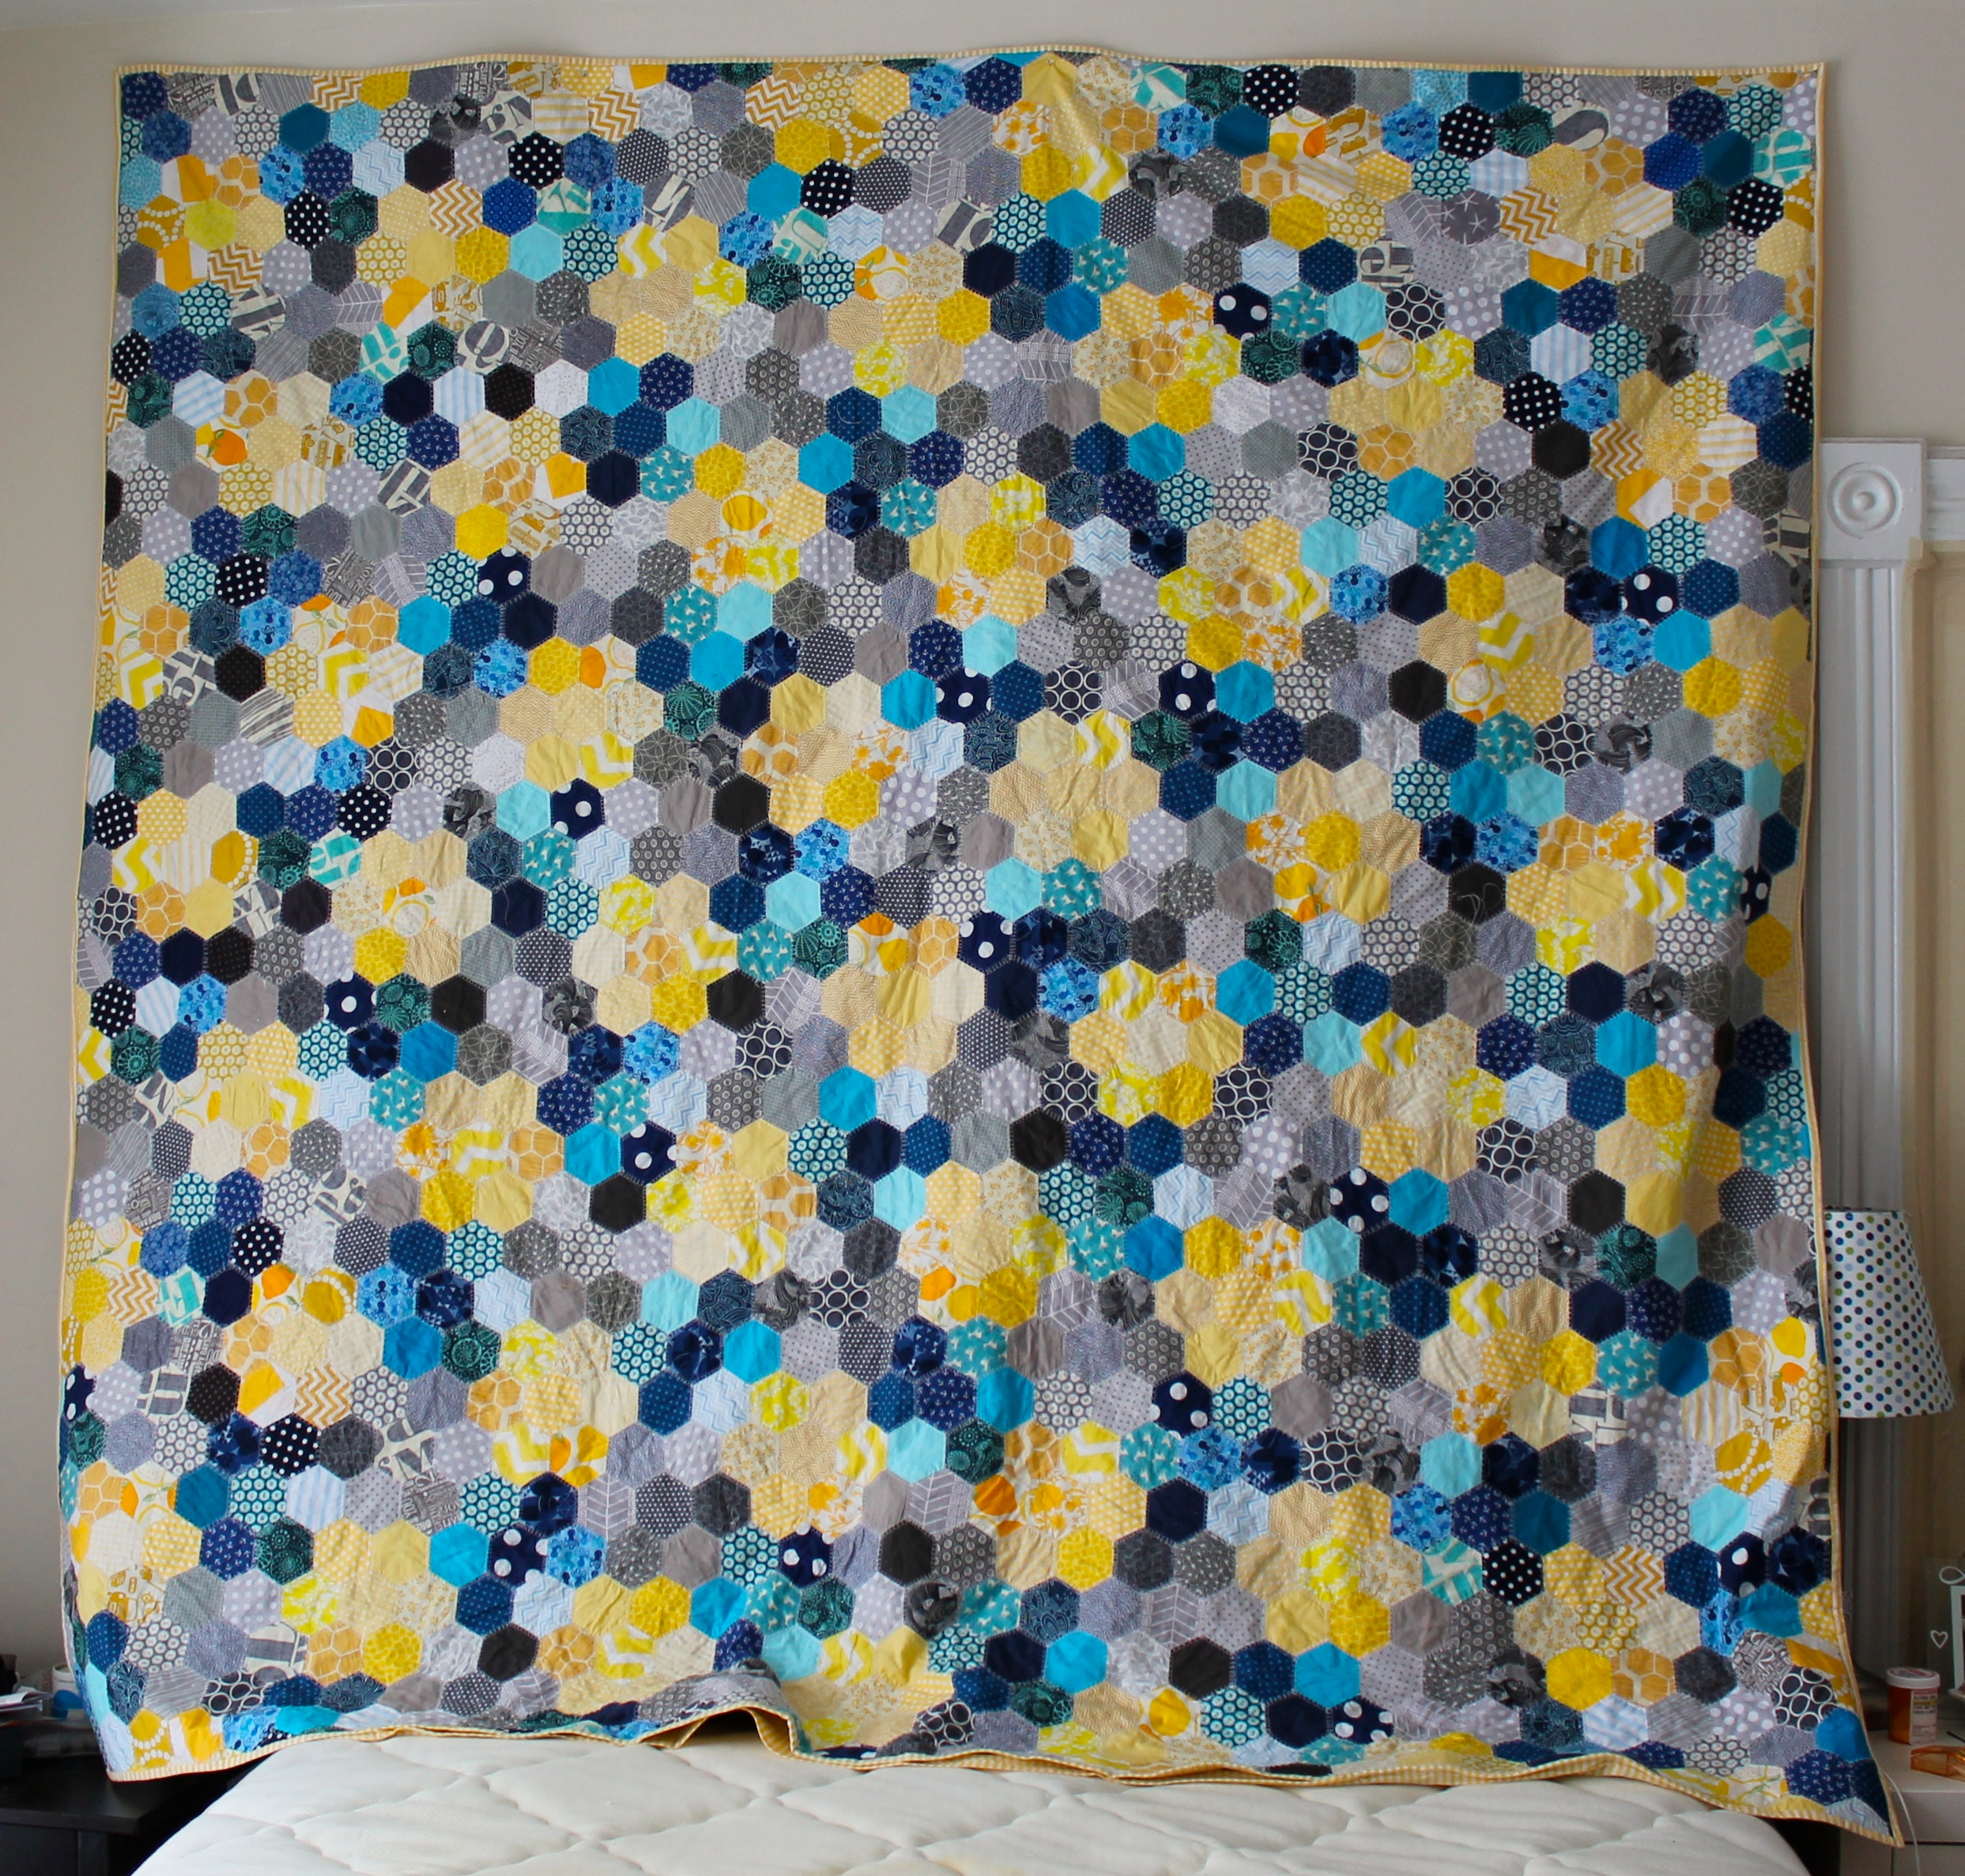 Queen sized hand pieced quilt made with blue, gray, and yellow hexagons